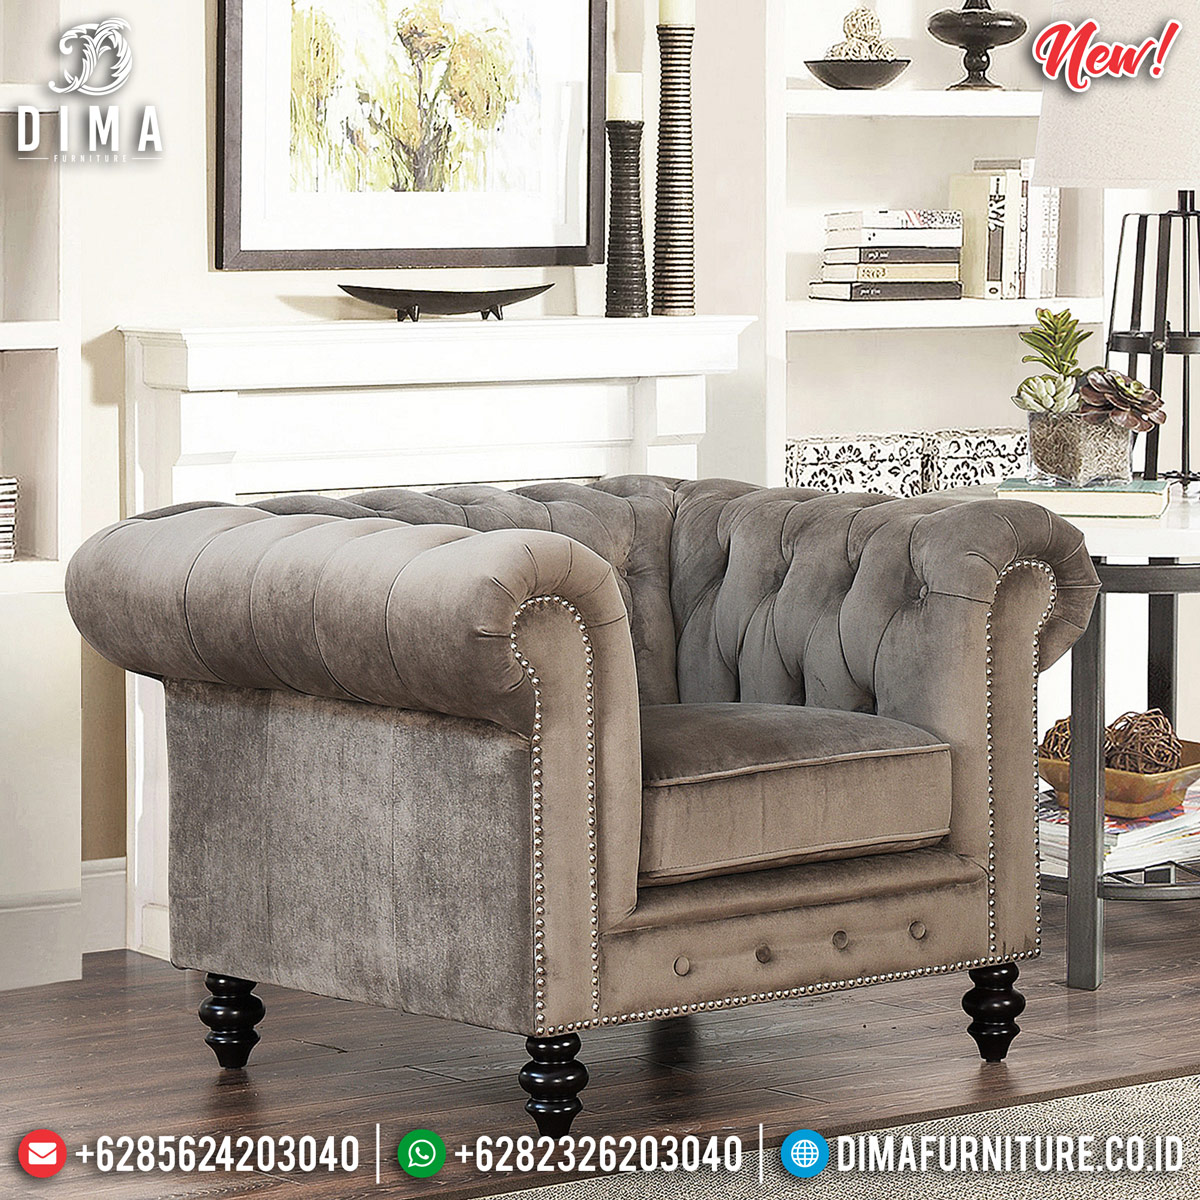 New Sofa Minimalis Modern Single Seater Luxury Furniture Jepara TTJ-0852